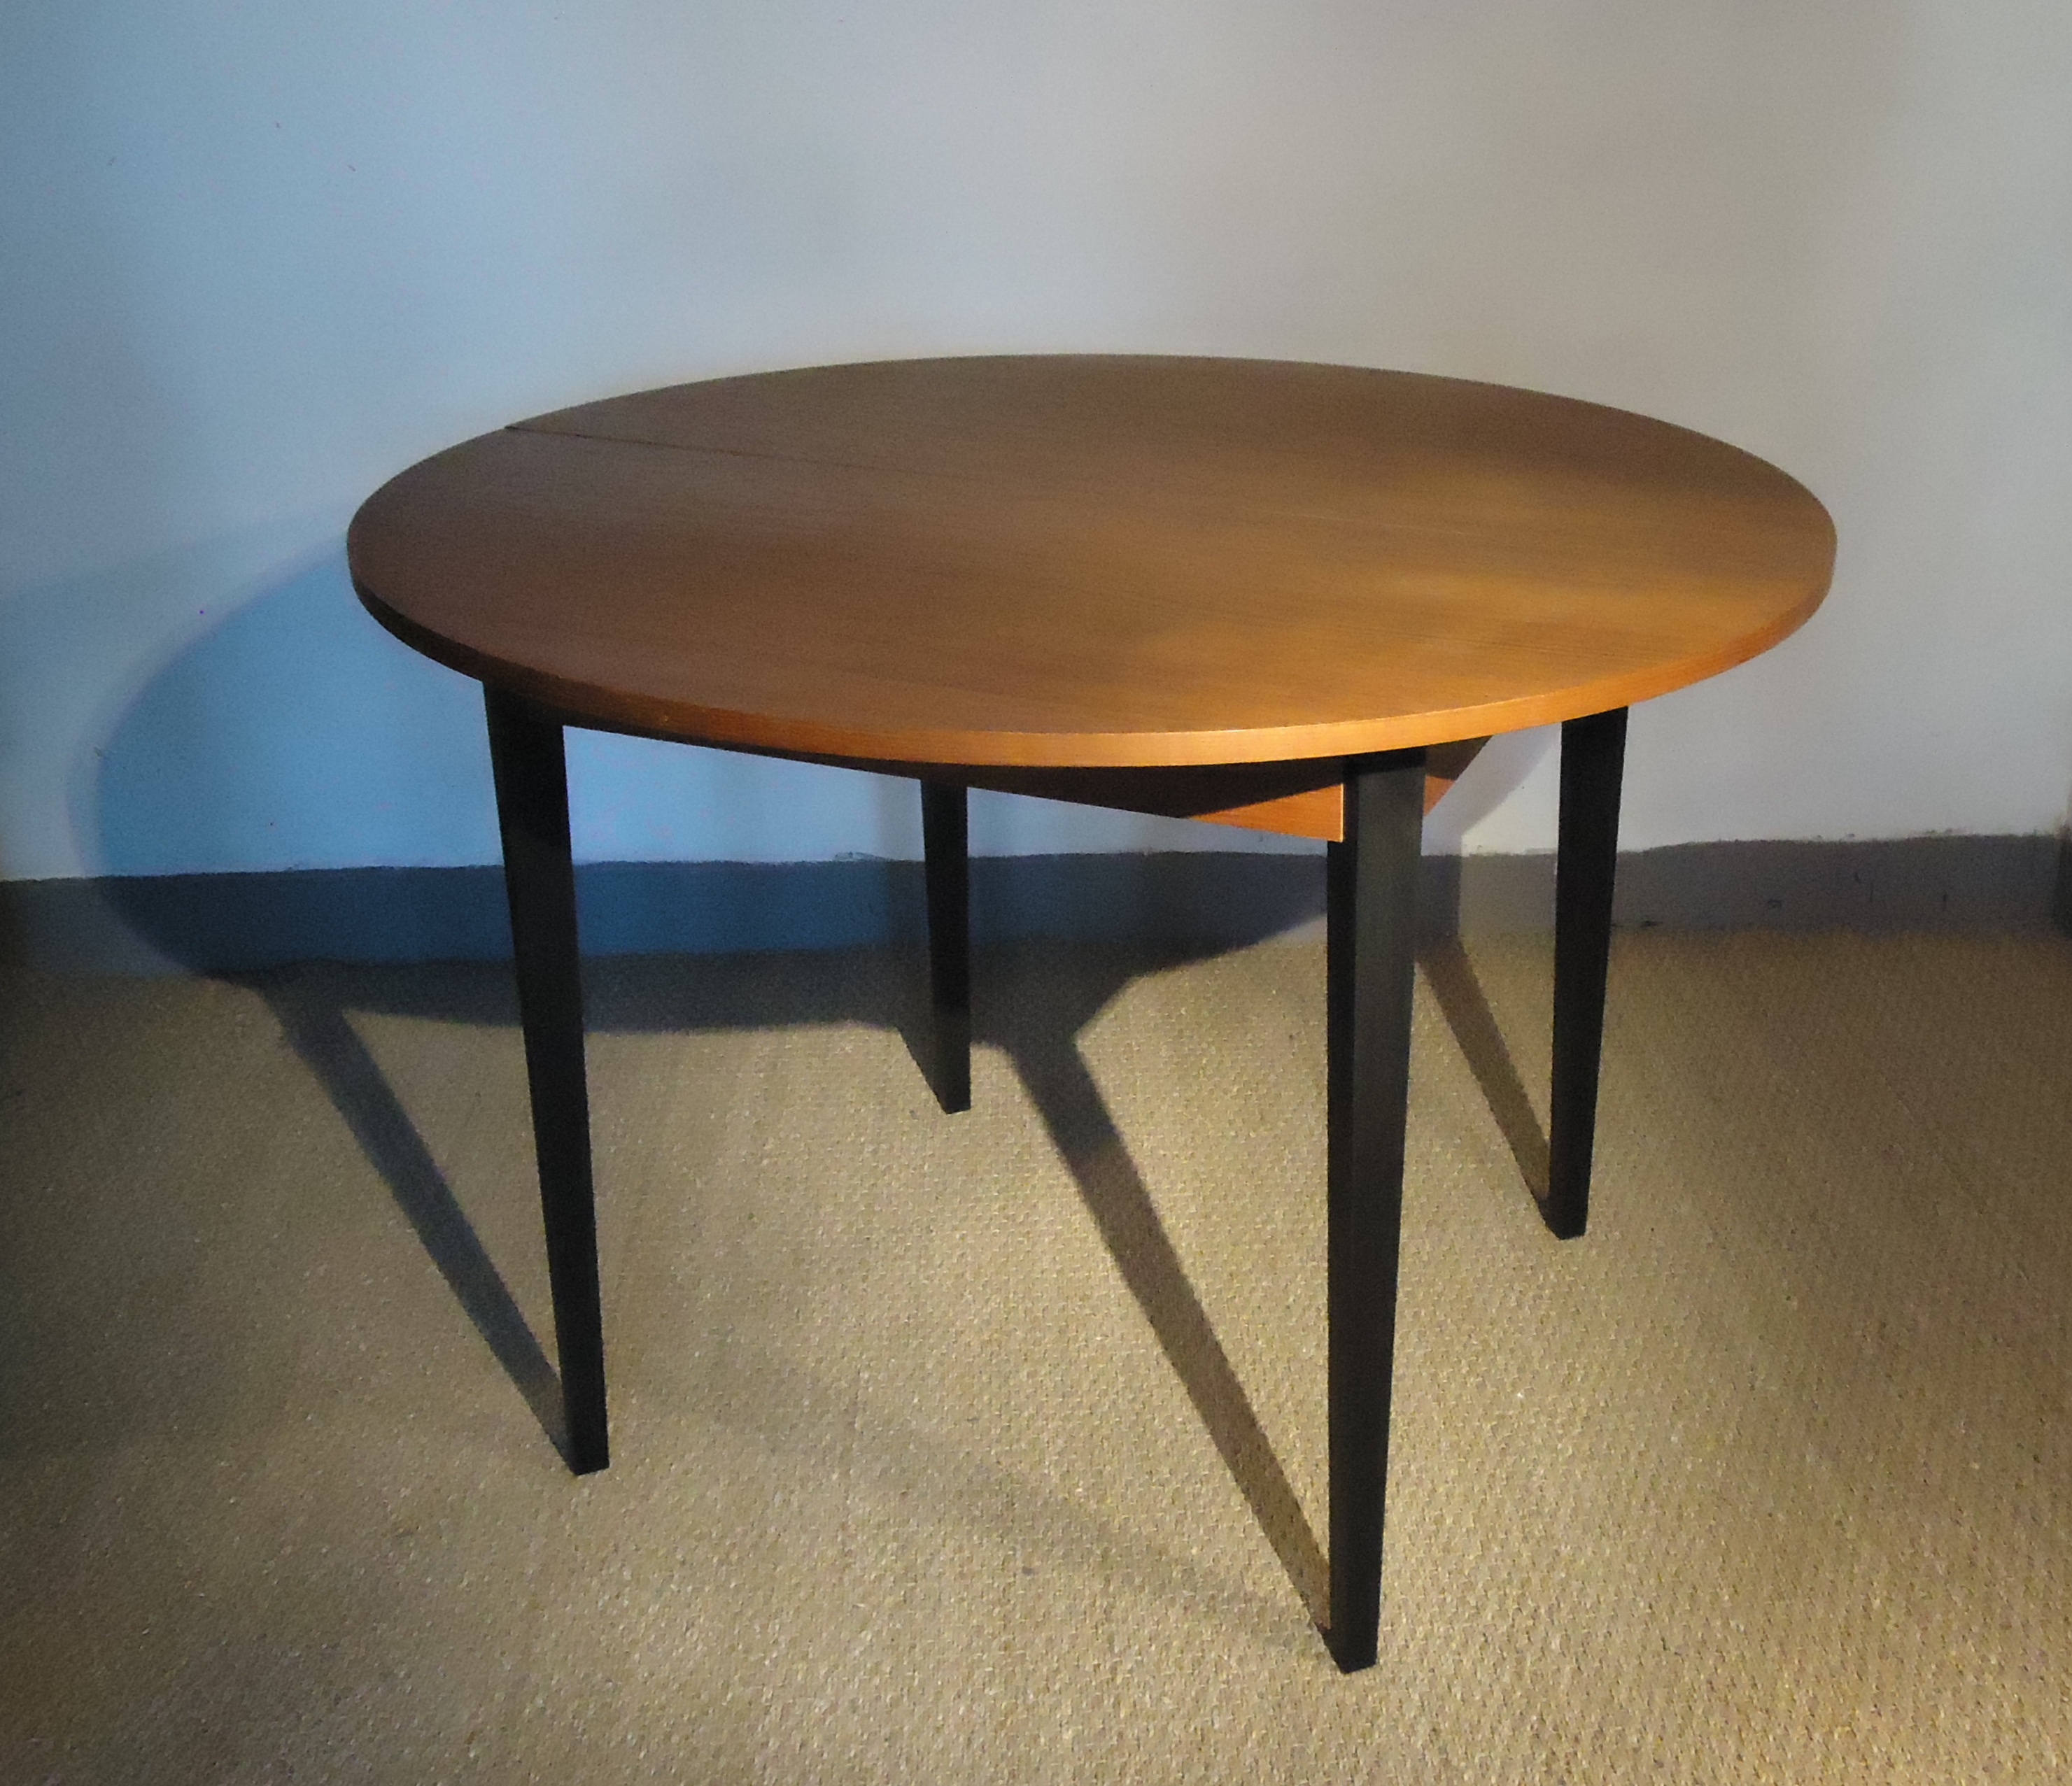 Table ronde scandinave vendu lu bee for Table scandinave ronde rallonge